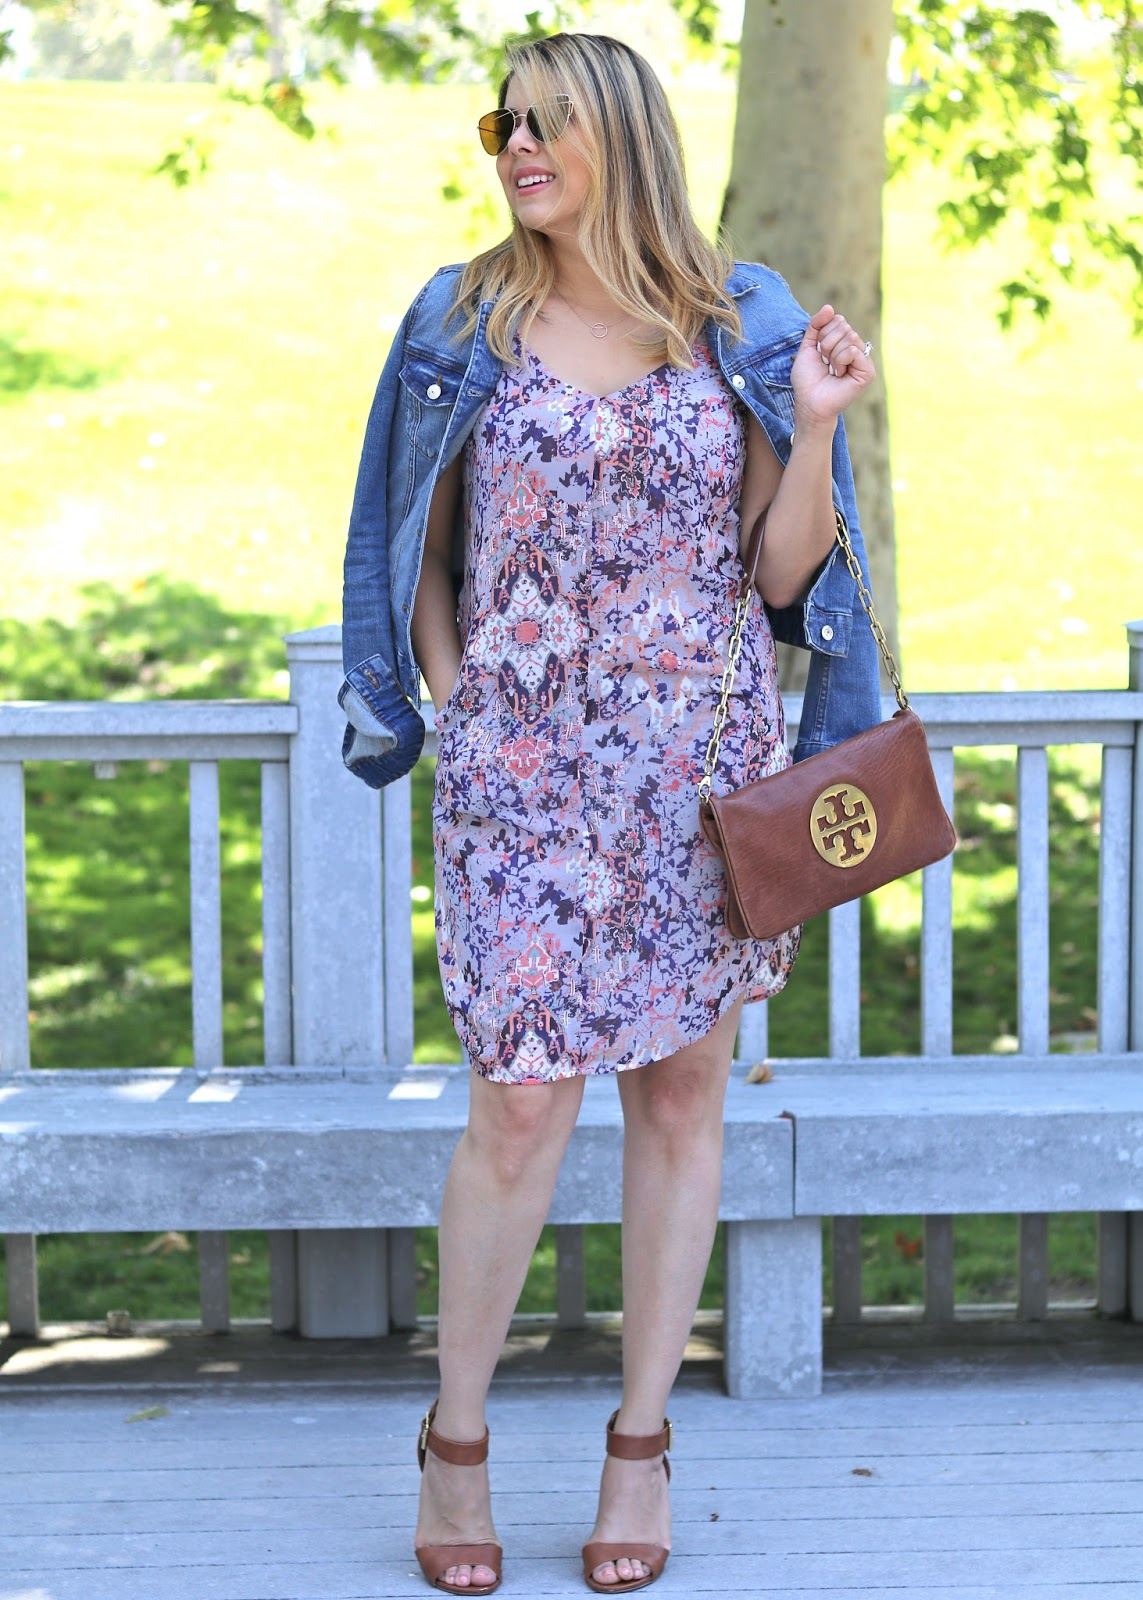 Cabi Fresco Dress, San Diego Fashion Blogger, affordable fashion blogger, Target Style Sandals